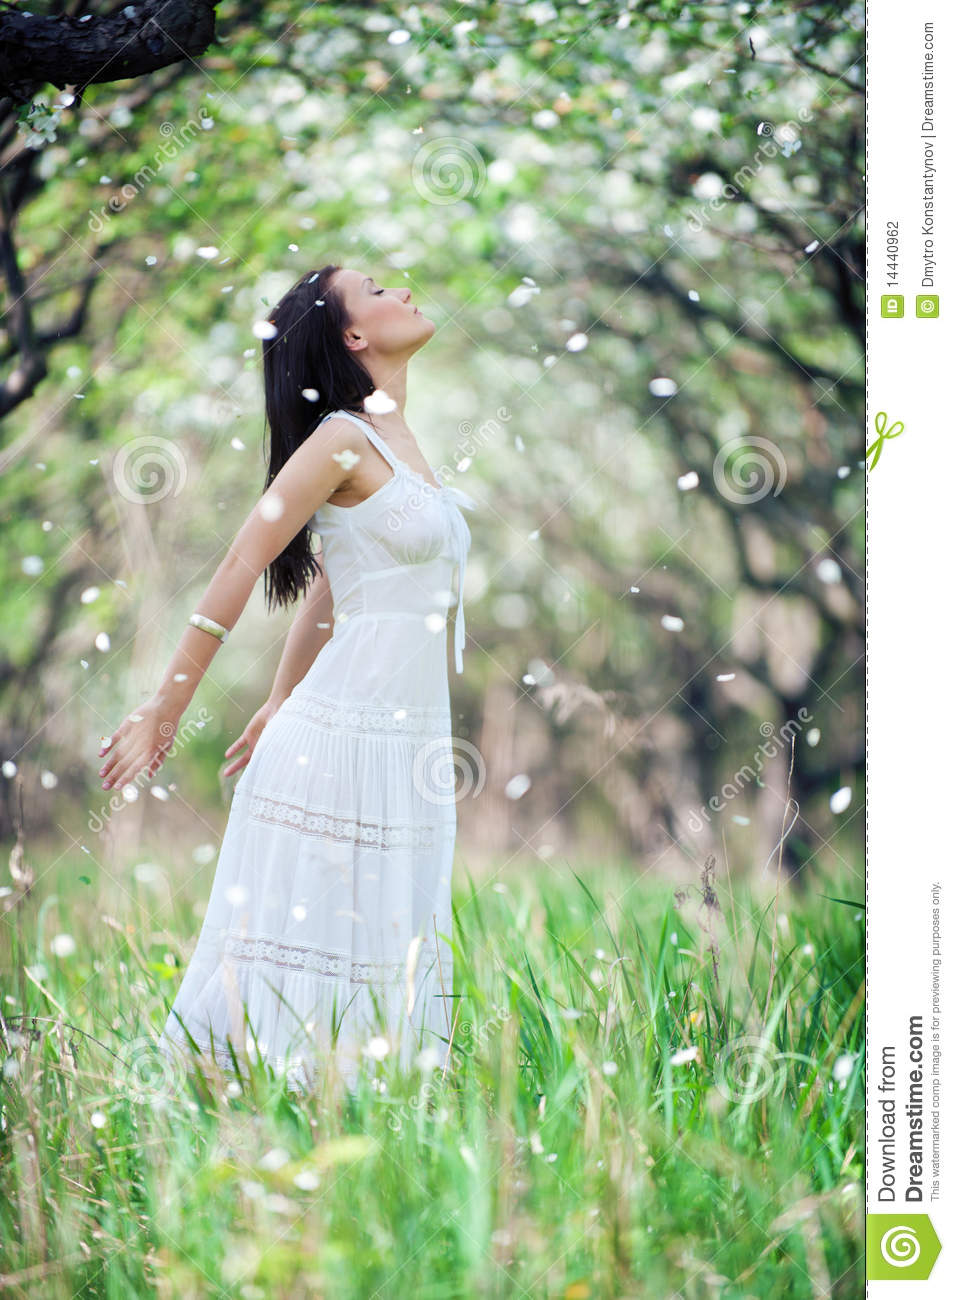 Carefree young woman in white dress